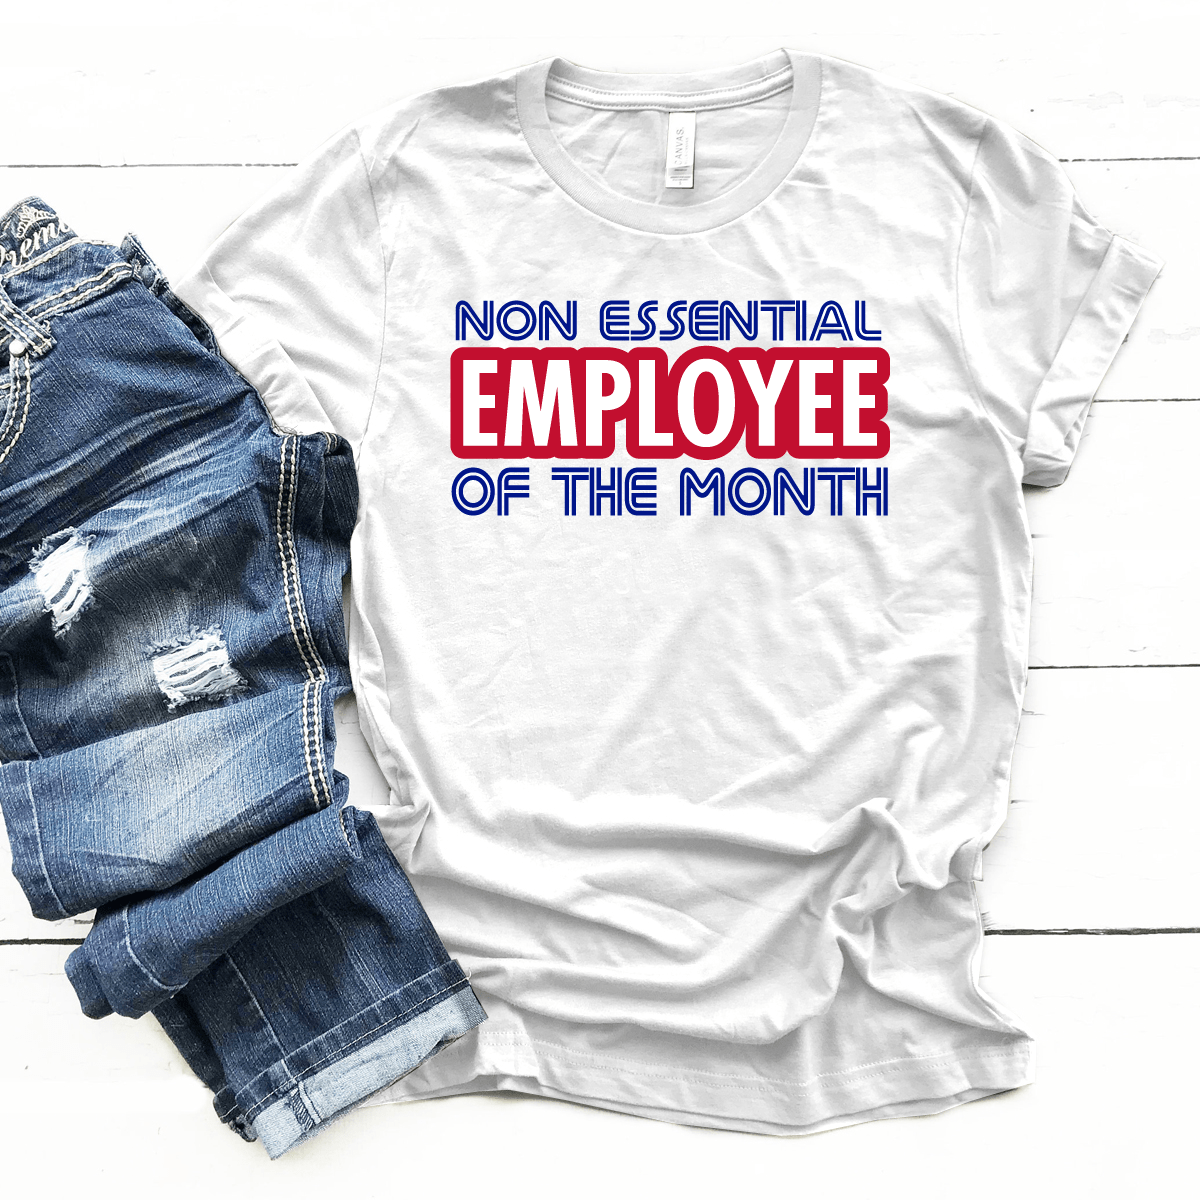 Non Essential Employee Of The Month Premium Unisex T-Shirt